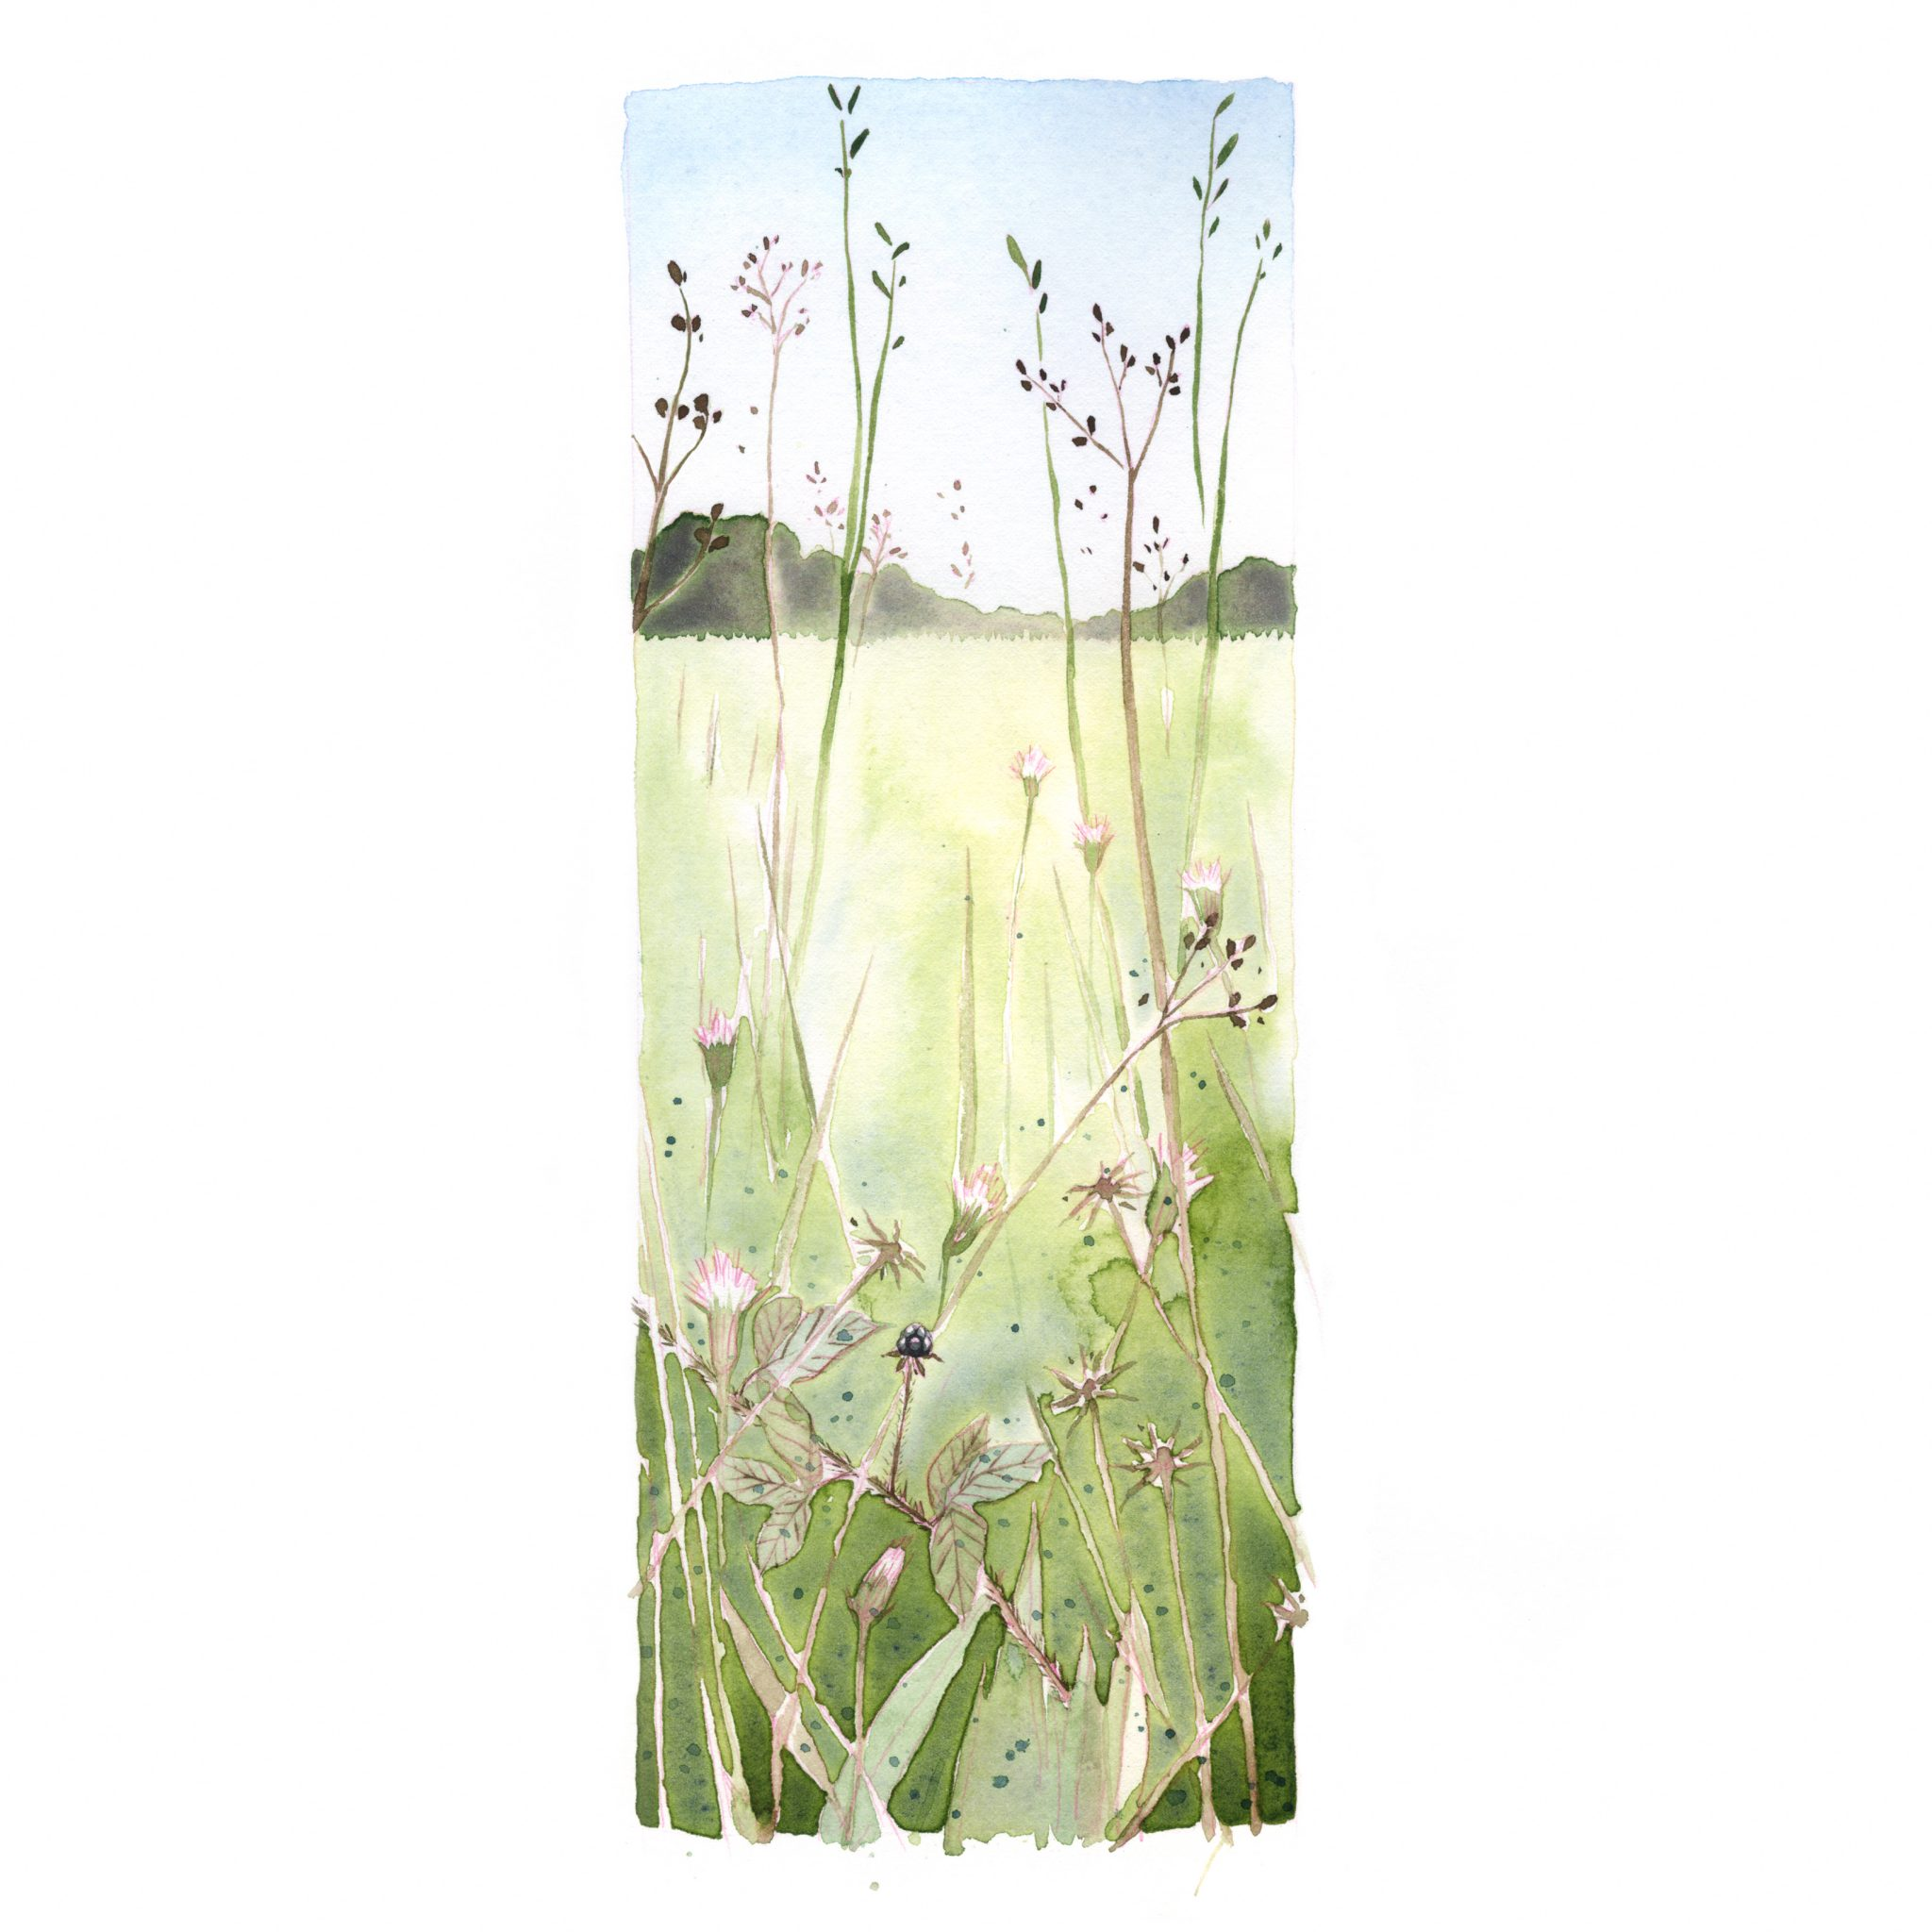 A watercolor painting od a field, a dewberry is in the foreground.